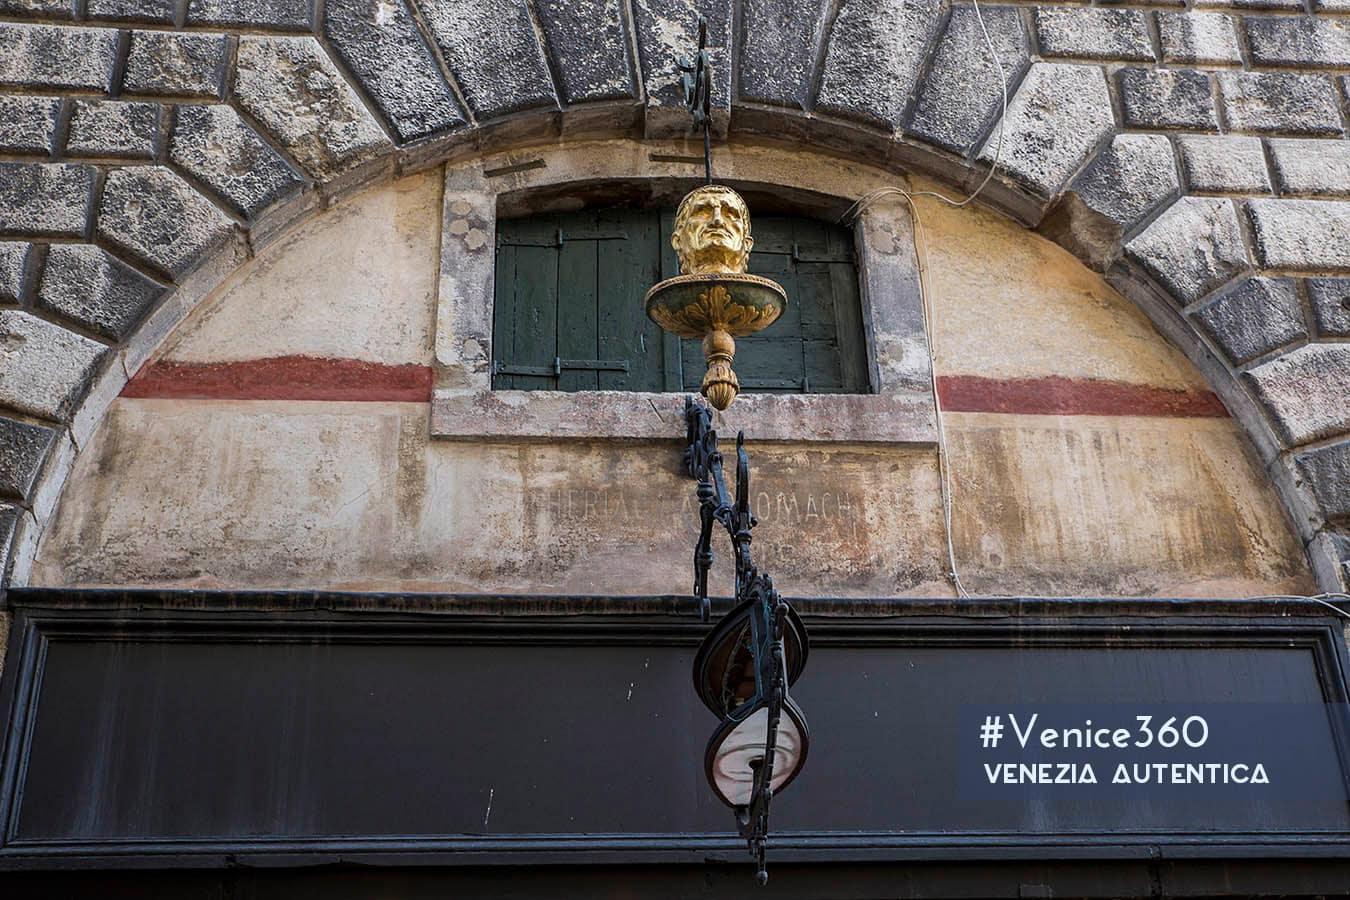 The Testa d'Oro in Venice, close to the Rialto bridge. It worked as the ensign of the most famous spicery of Venice for 240 years.